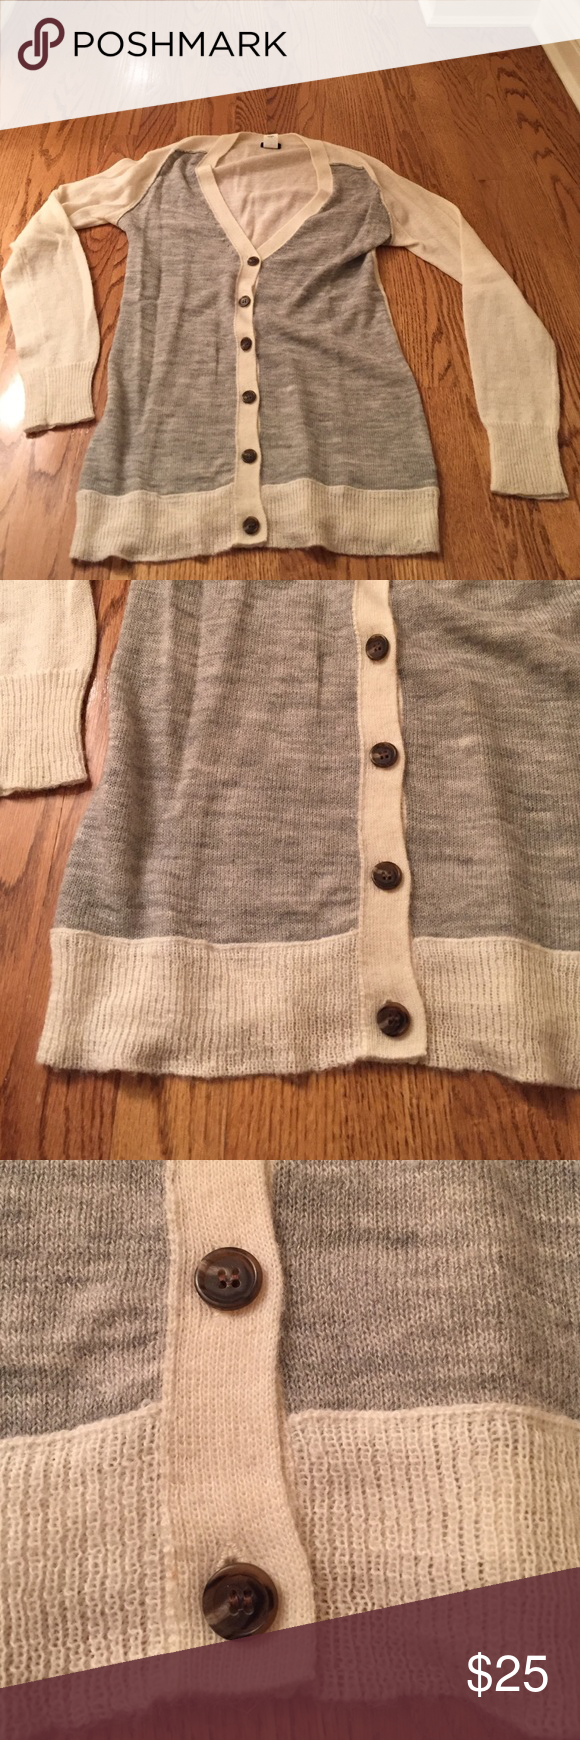 J. Crew Sweater Good condition two-toned sweater J. Crew Sweaters Cardigans